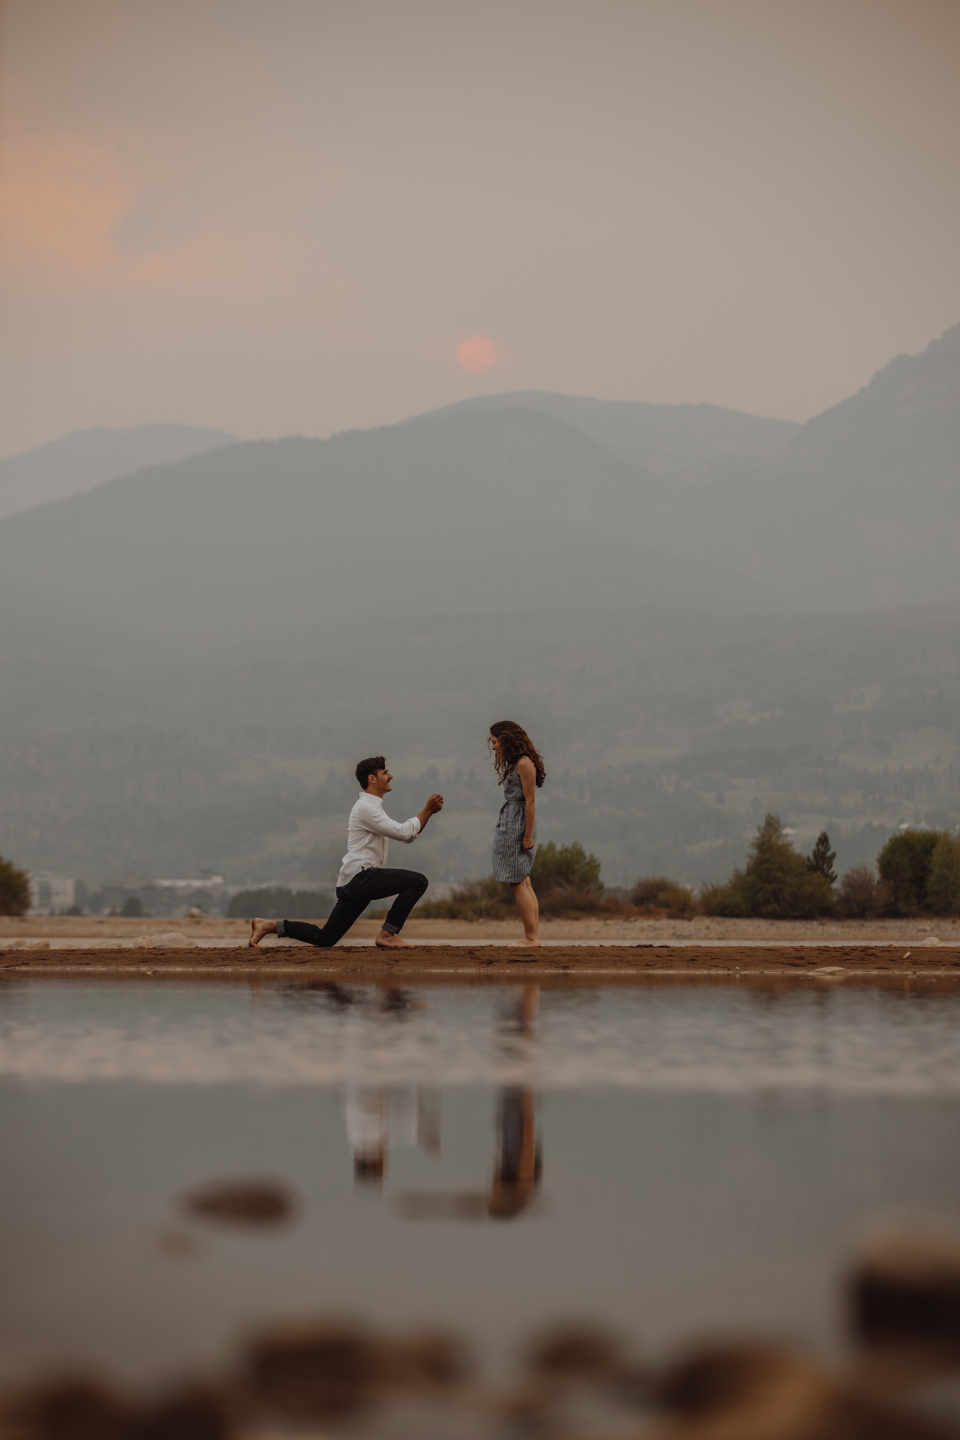 People propose to each other most often within a year or two of meeting each other, but there is generally no rule for that